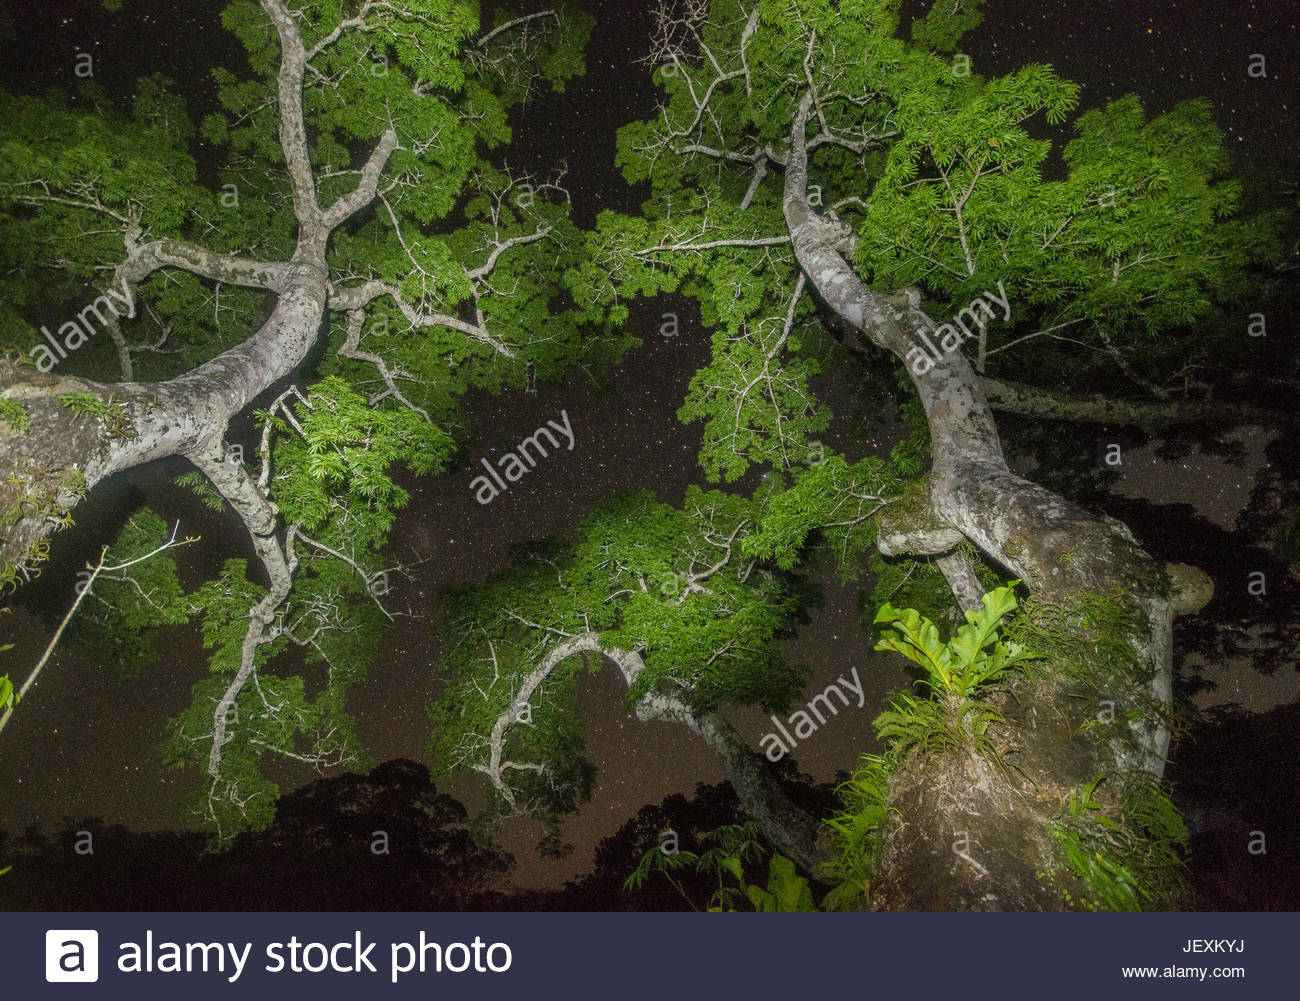 The rainforest canopy at night with stars. & The rainforest canopy at night with stars Stock Photo: 146874550 - Alamy